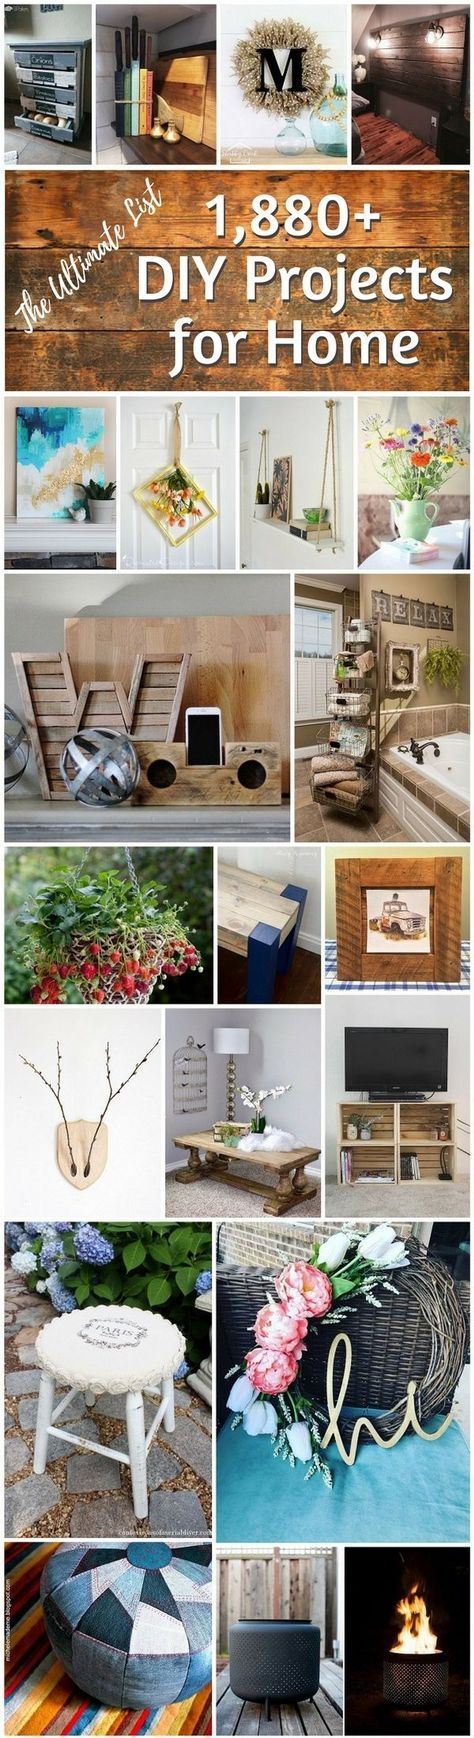 diy projects for home the ultimate list